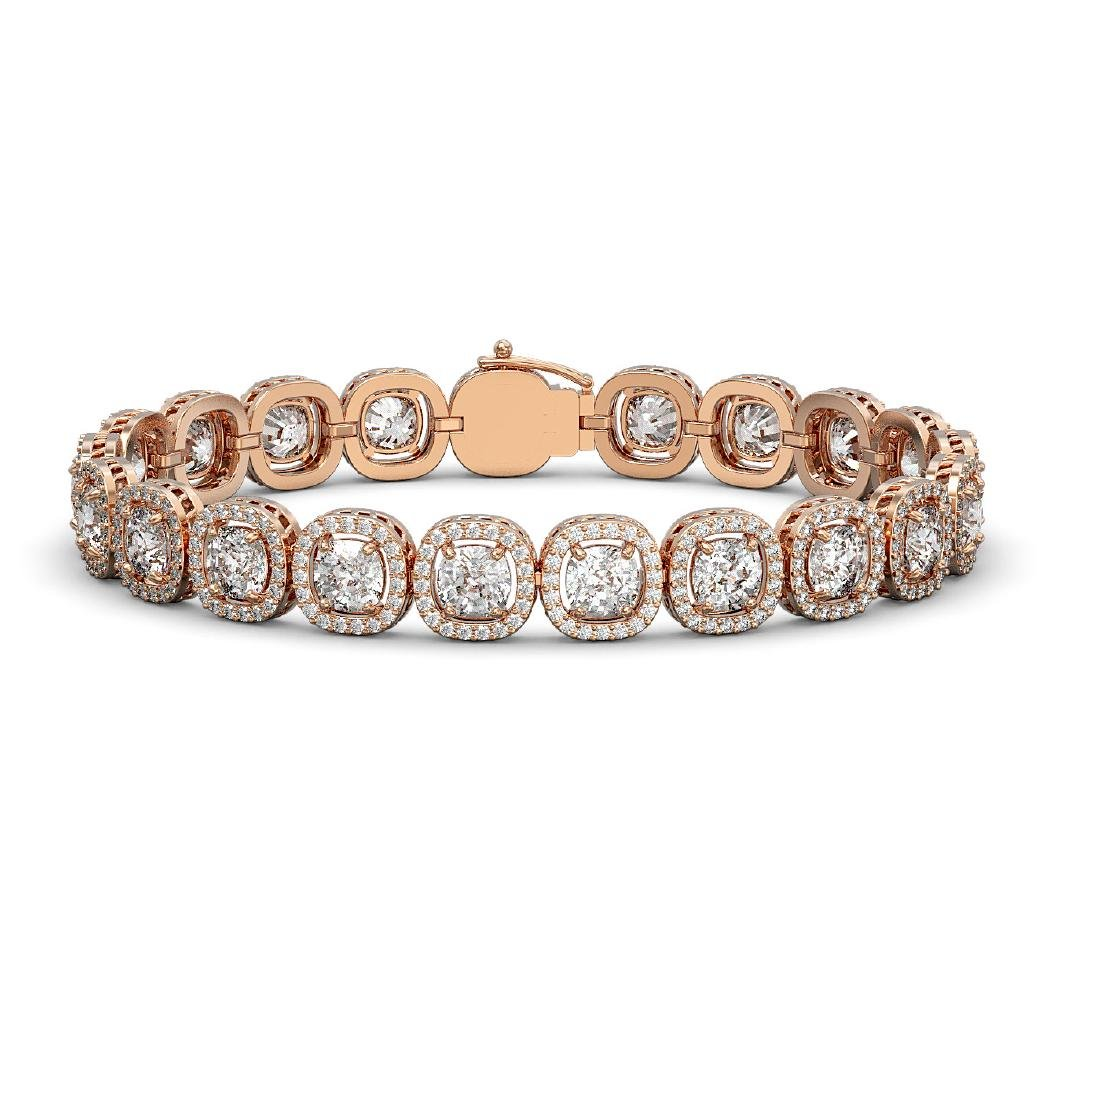 14.41 CTW Cushion Diamond Designer Bracelet 18K Rose